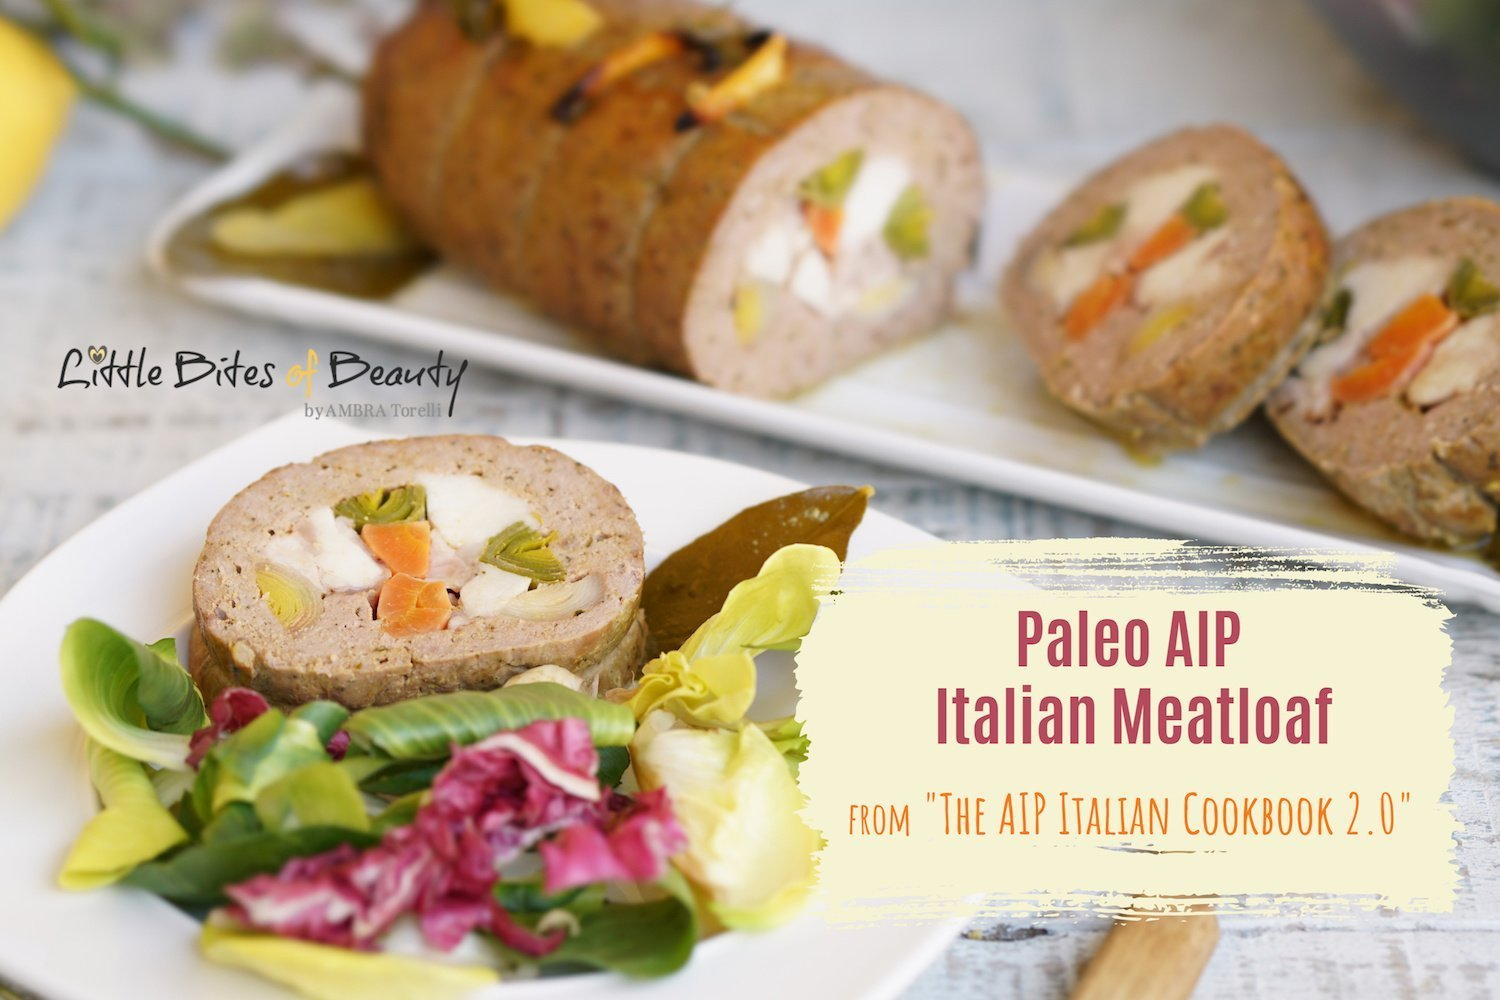 AIP Italian Food - Paleo AIP Meatloaf Italian Style from The AIP Italian Cookbook